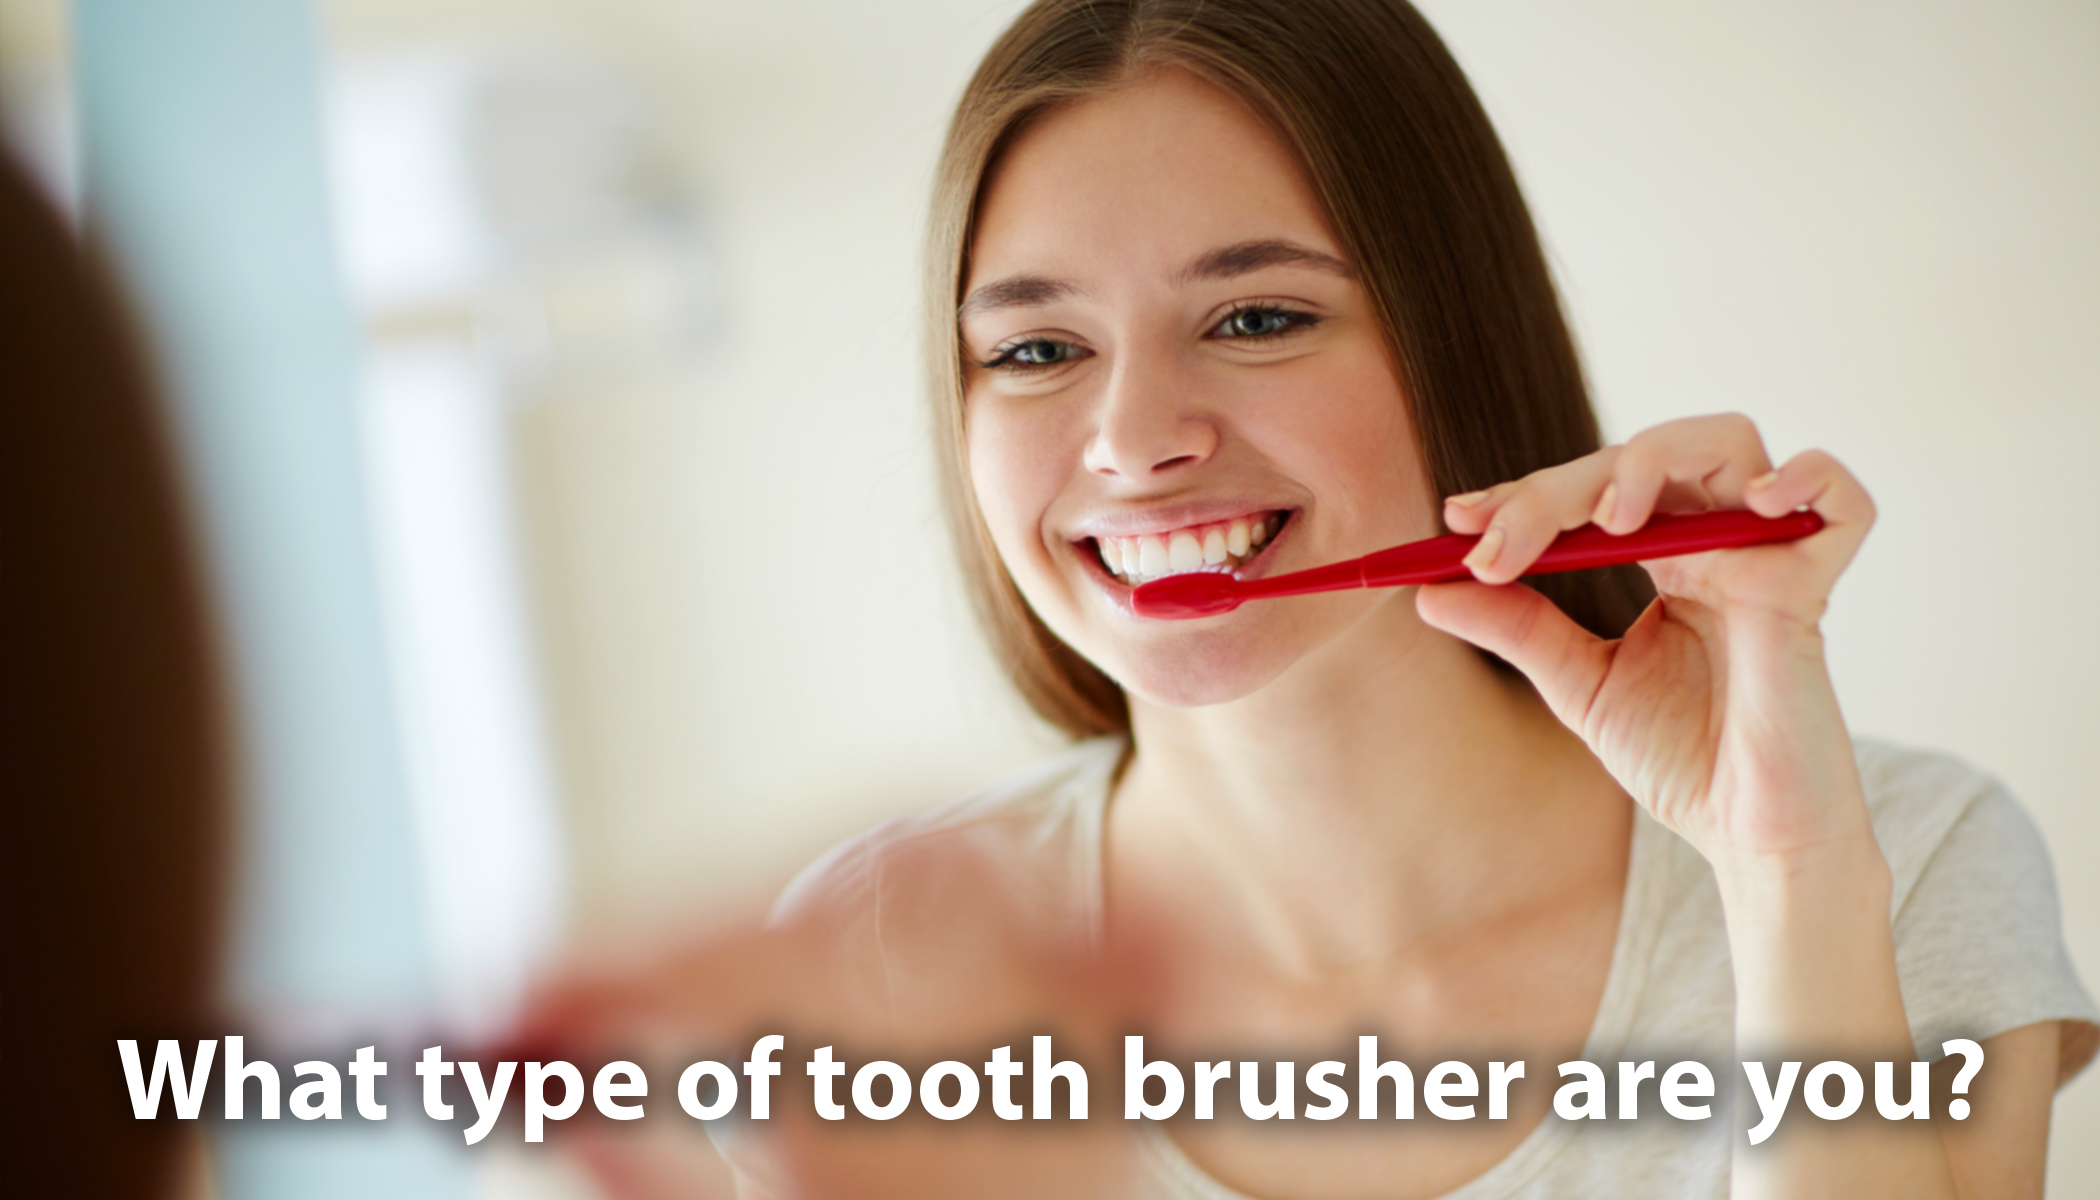 6 Tooth-Brushing Styles and What They Reveal About Your Personality Type